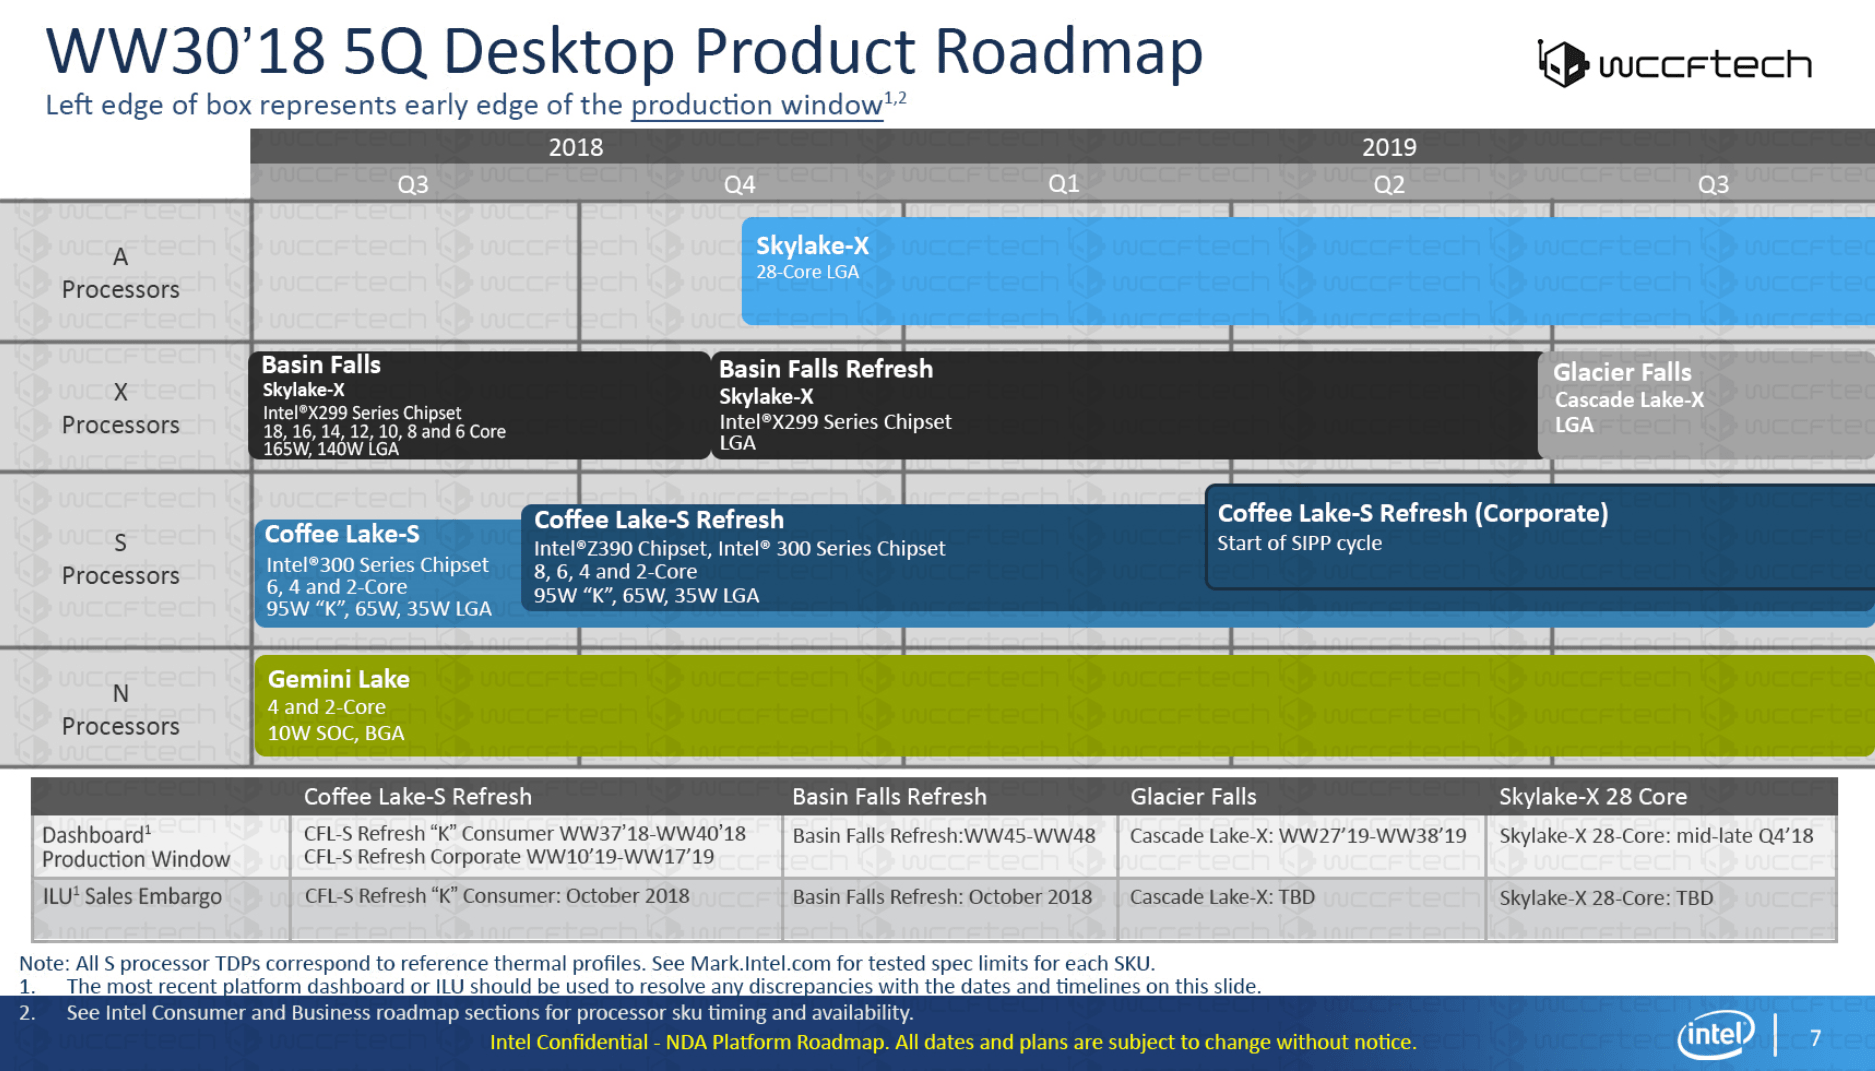 Intel Consumer Roadmap 2018/2019